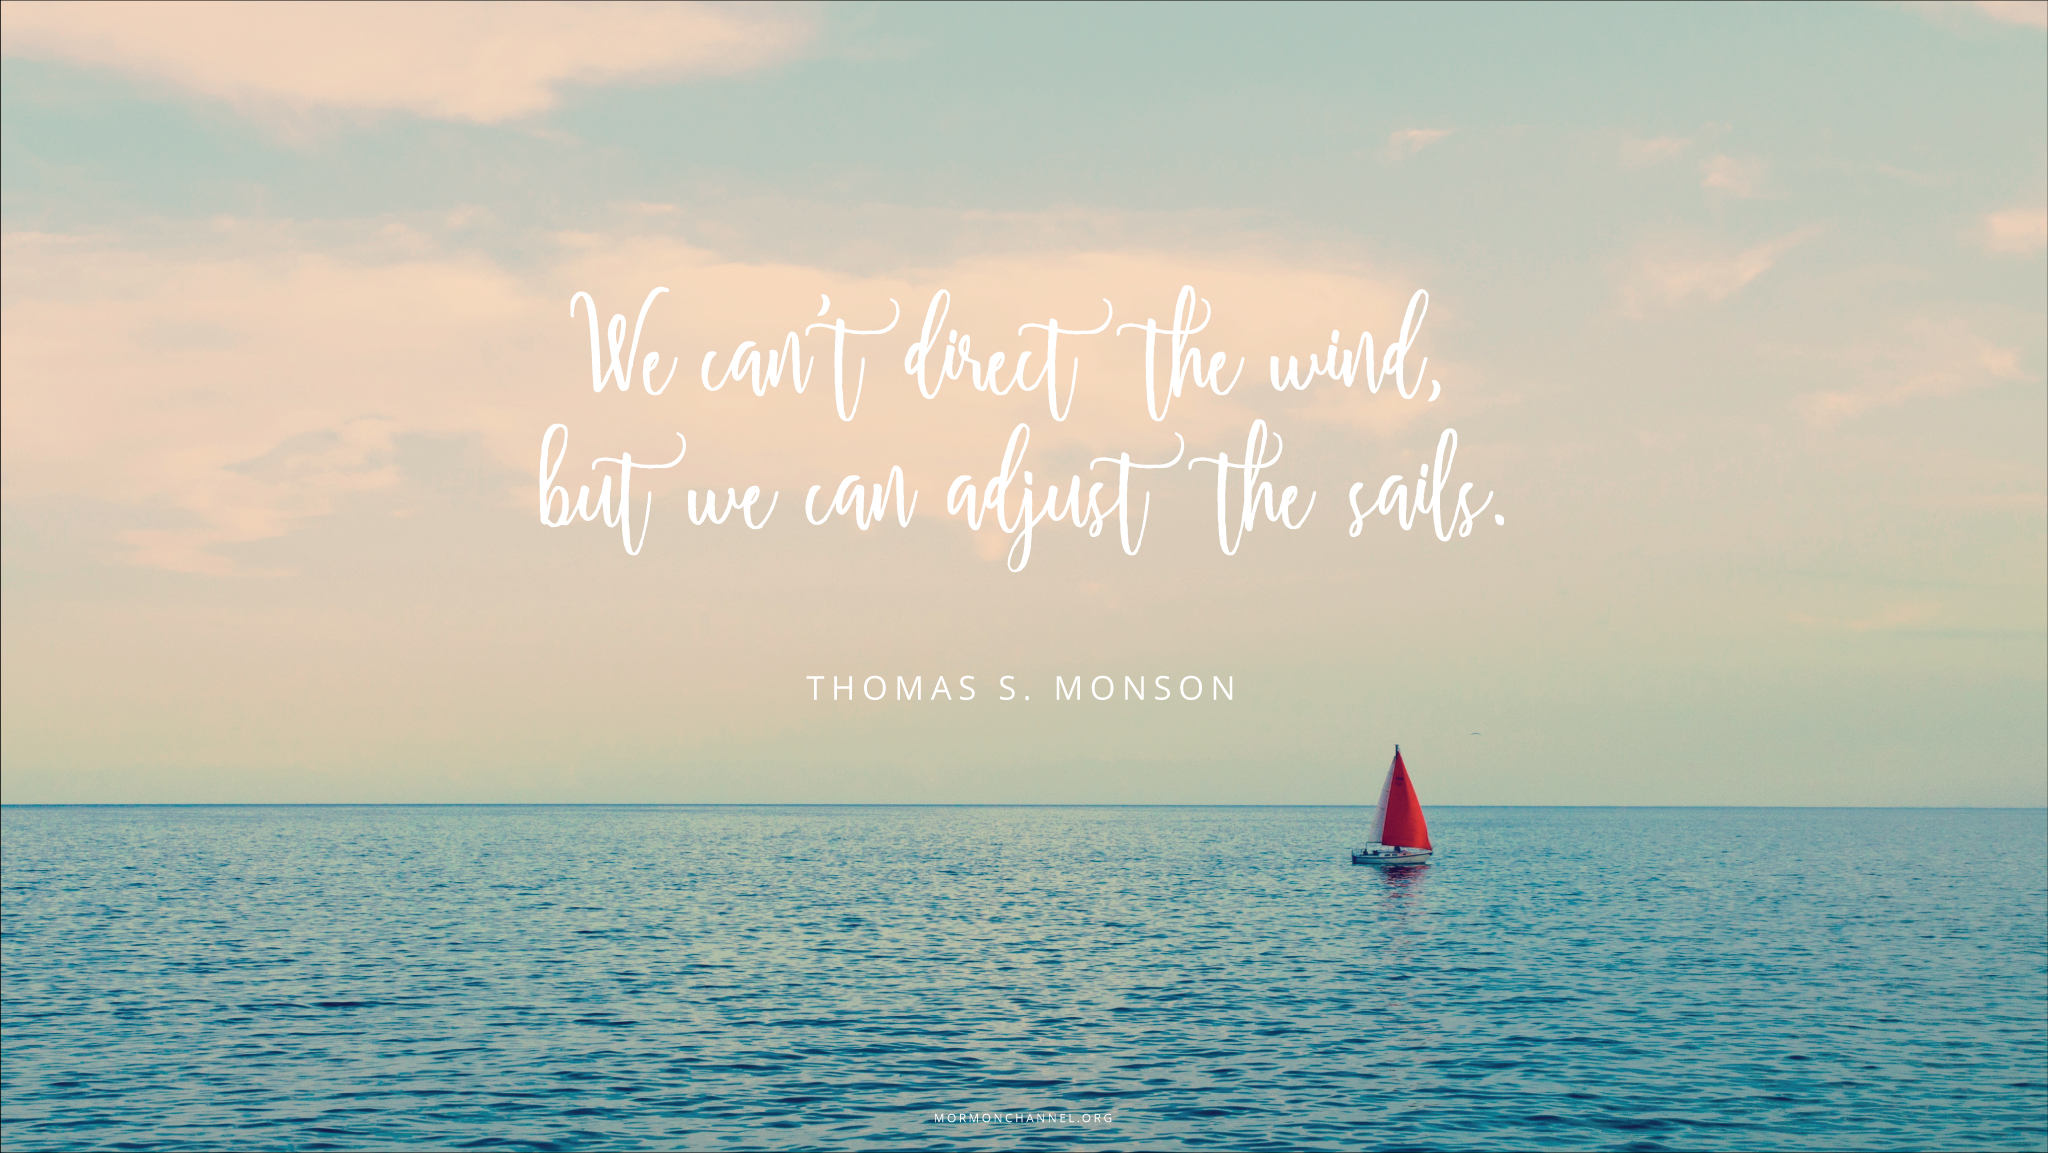 92 Best Sailing Quotes Images On Pinterest: Daily Quote: We Can Adjust The Sails